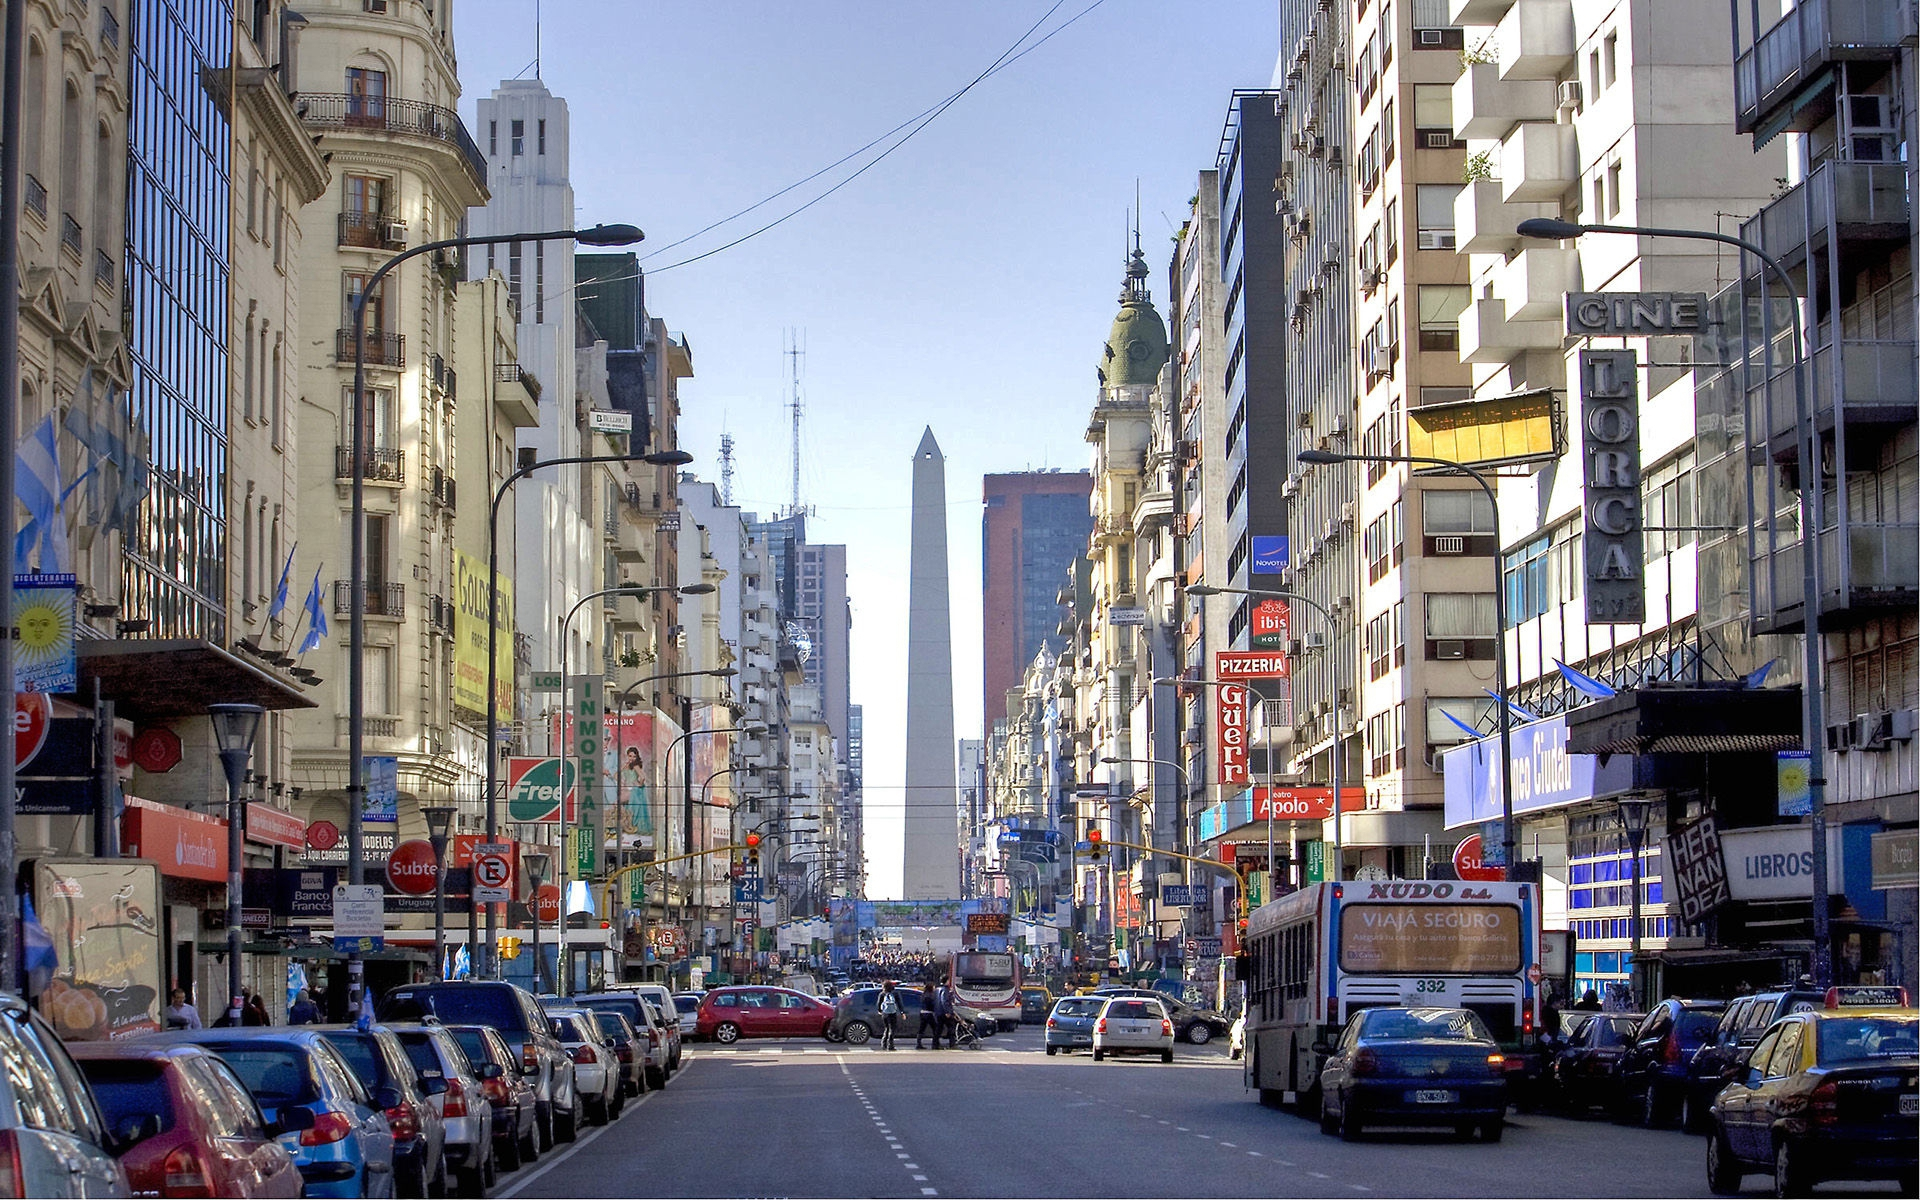 Buenos aires wallpapers images photos pictures backgrounds for Sillones de diseno buenos aires